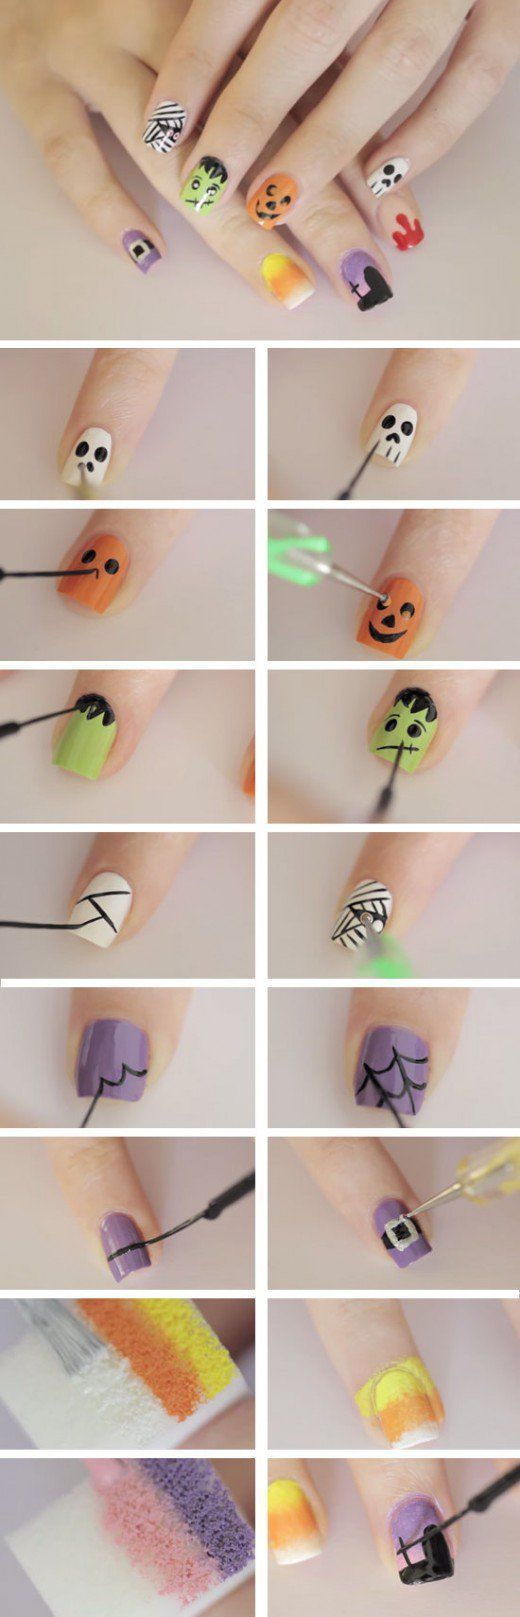 Ghoulish Shapes Figures Diy Halloween Nail Design Ideas For Short Nails Halloween Nails Diy Halloween Nail Designs Diy Nails